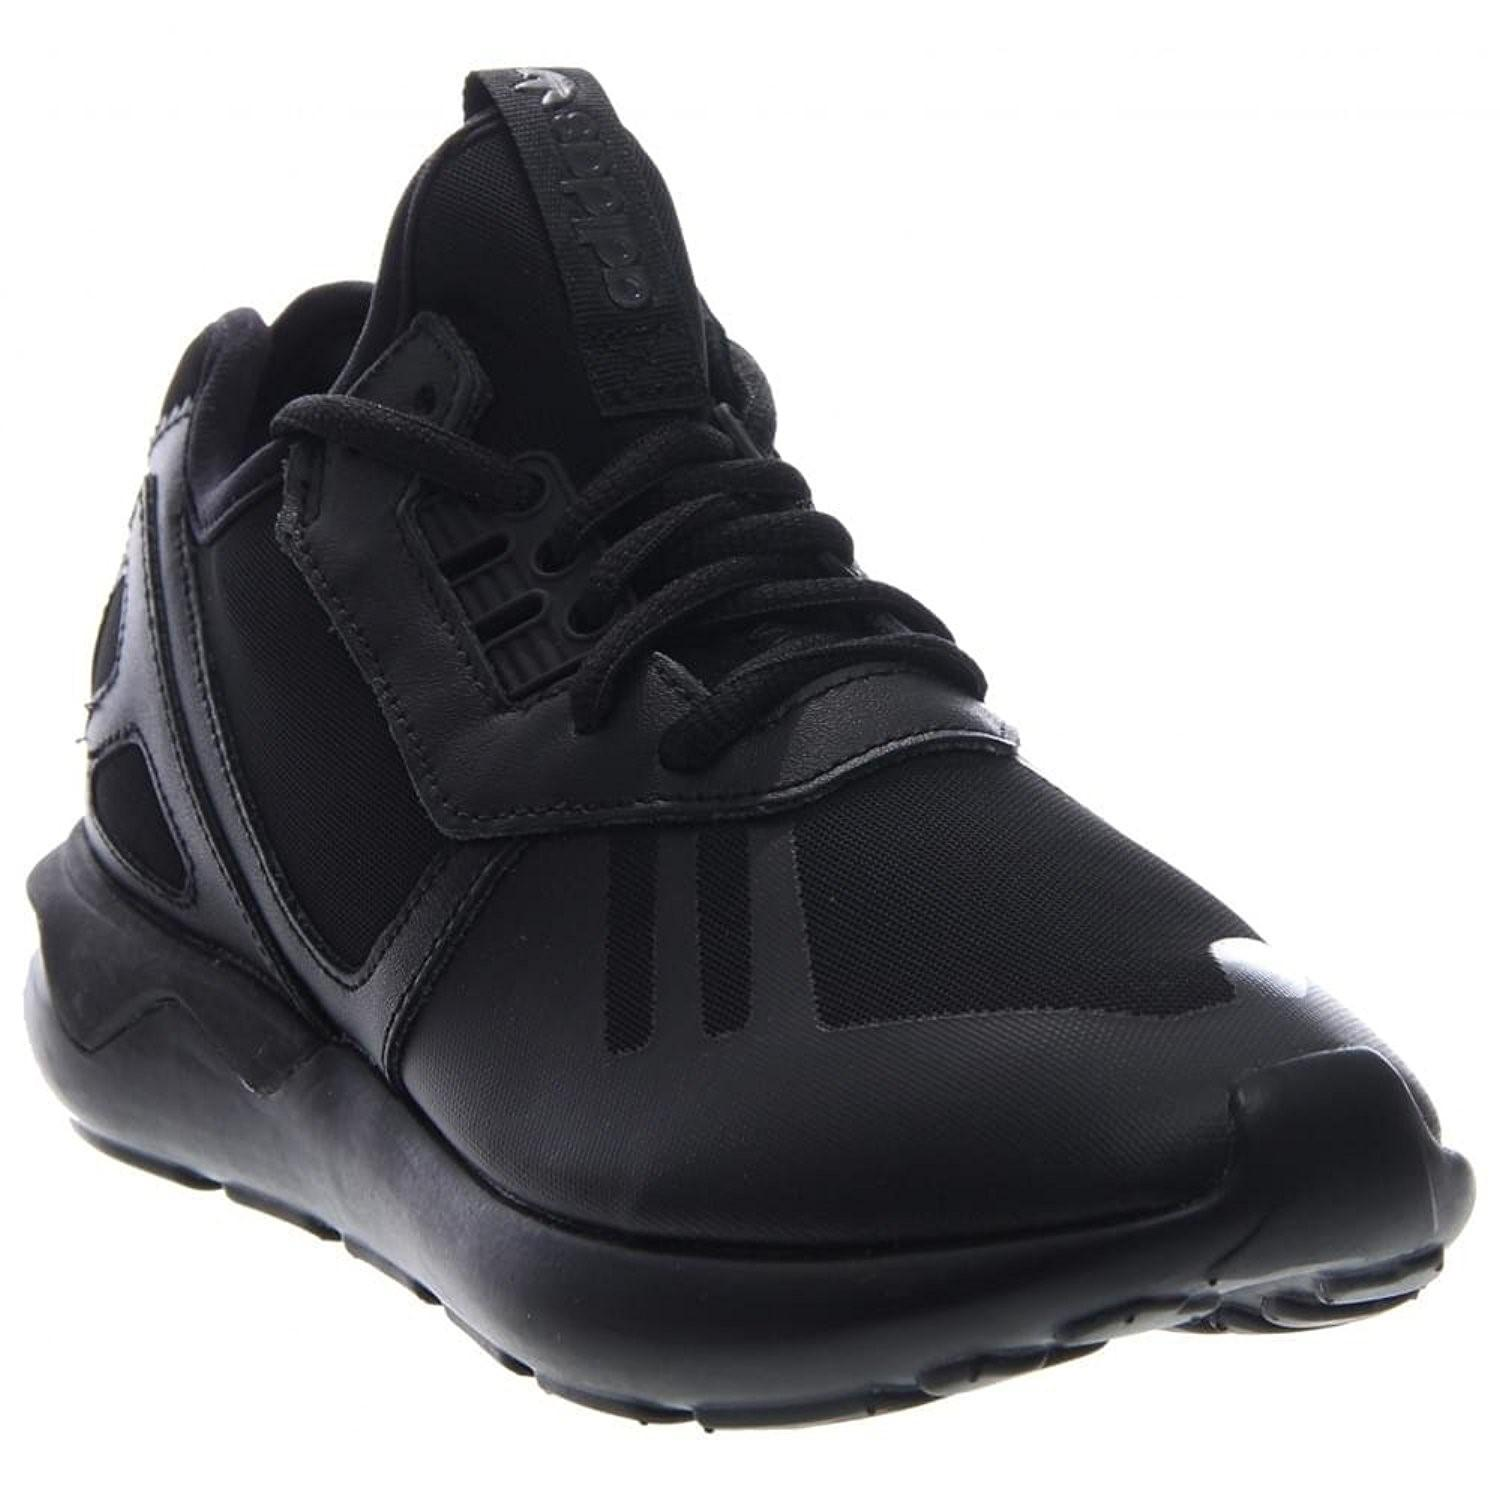 Lyst - Adidas Tubular Runner W Wide Shoes in Black for Men cea73c38b